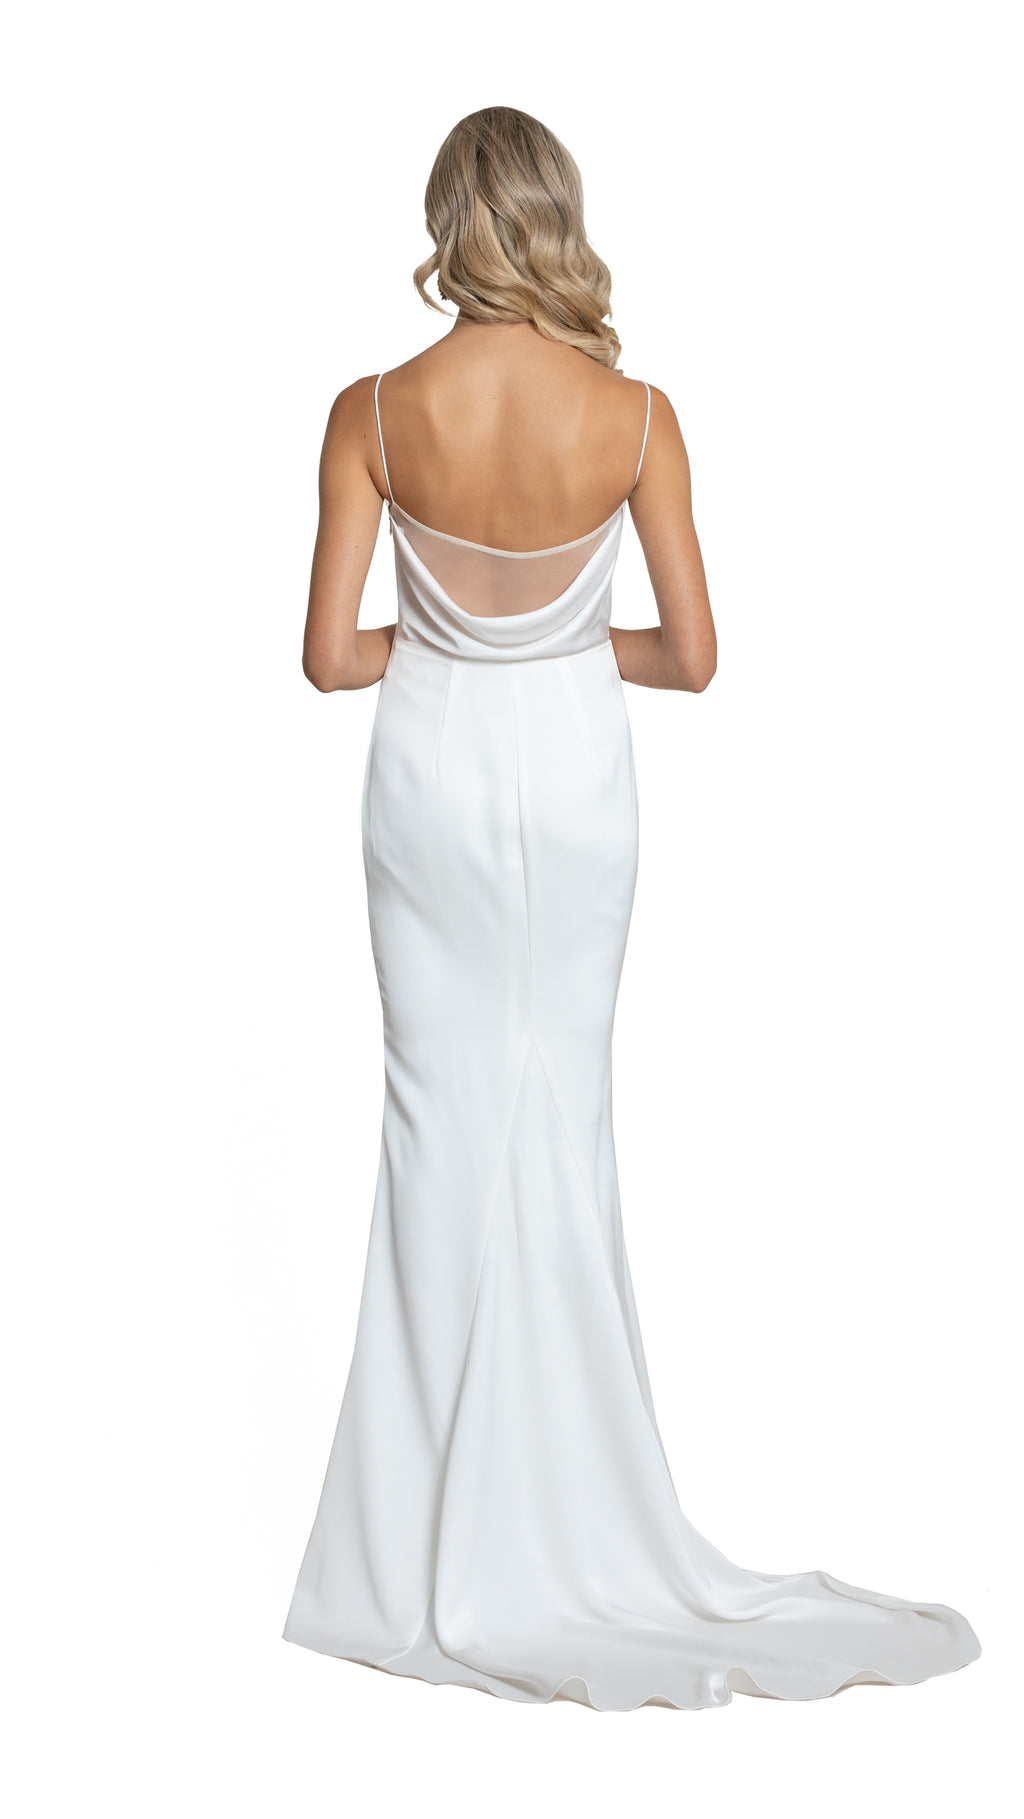 Yasmin Cowl Satin Gown with draped back in white